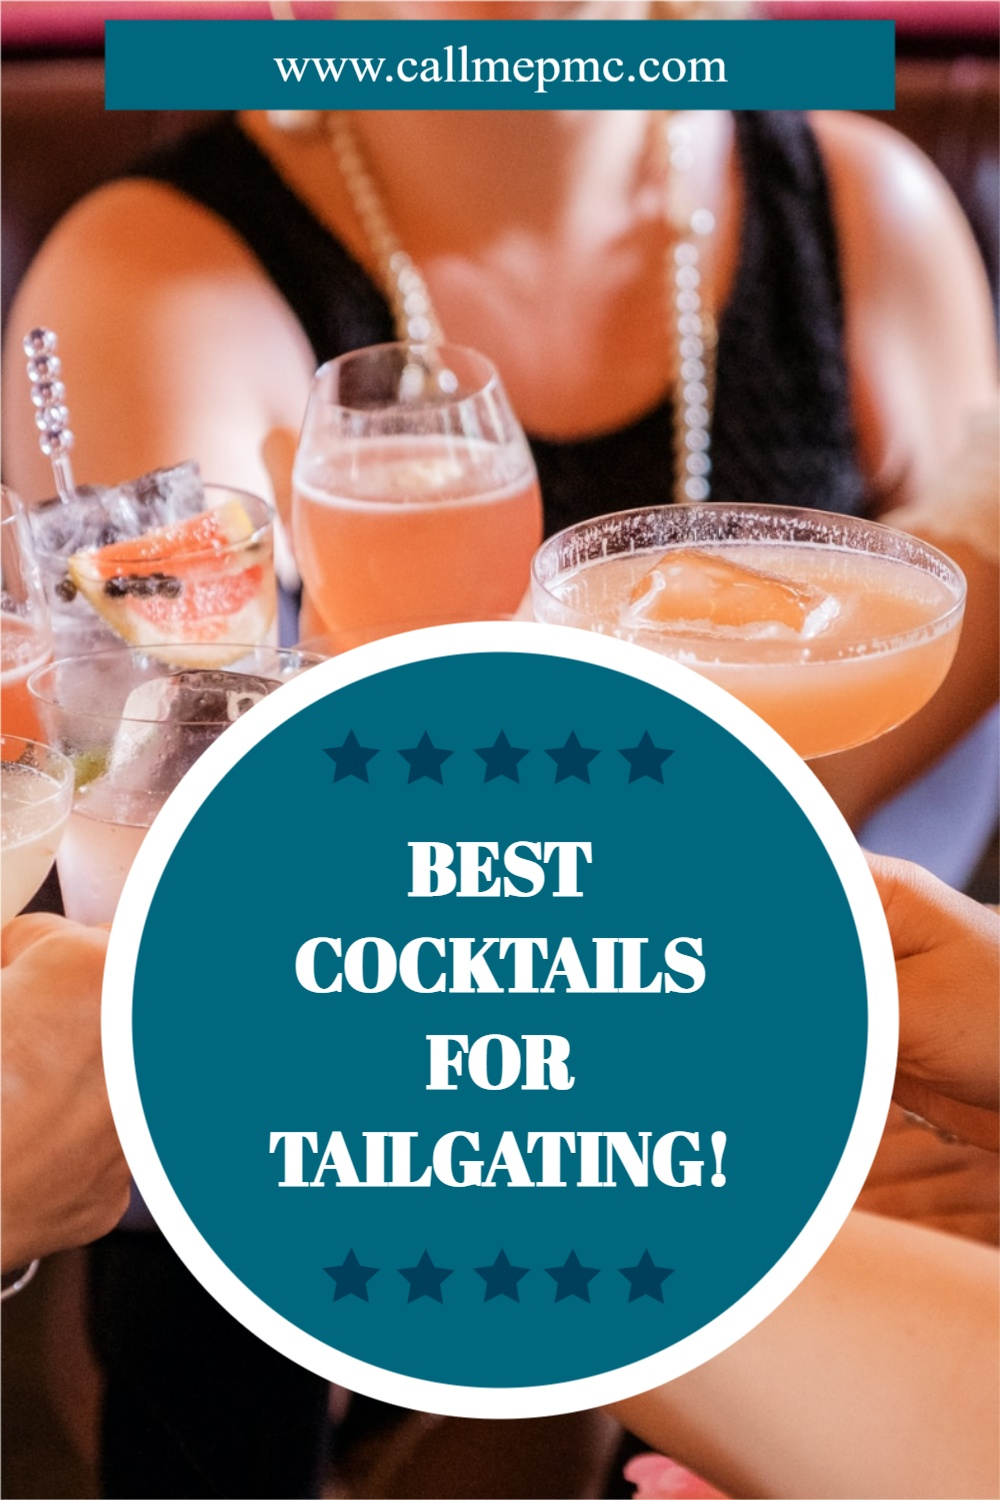 BEST COCKTAILS FOR TAILGATING!